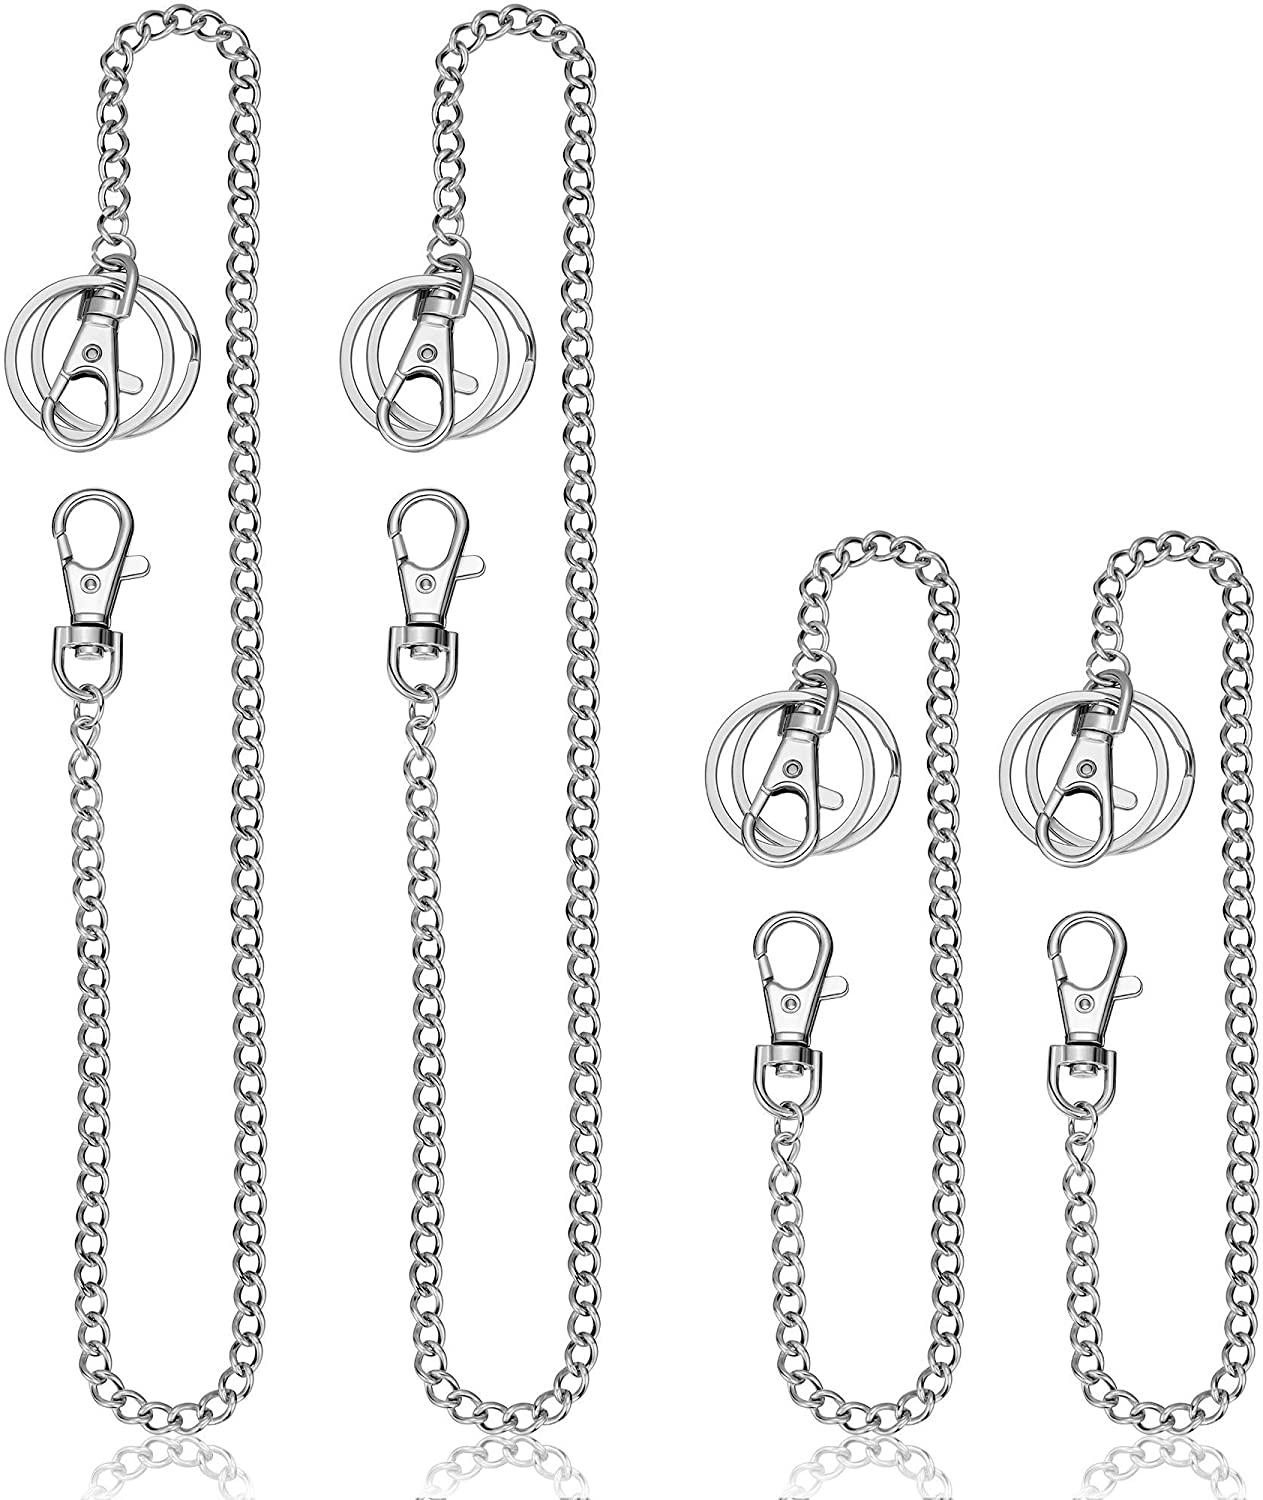 4 Pieces Wallet Chain Pocket Keychain Belt Chain with Lobster Clasp and Keyring for Keys Wallets Jeans Pants Supplies (Color 1, Size 1)